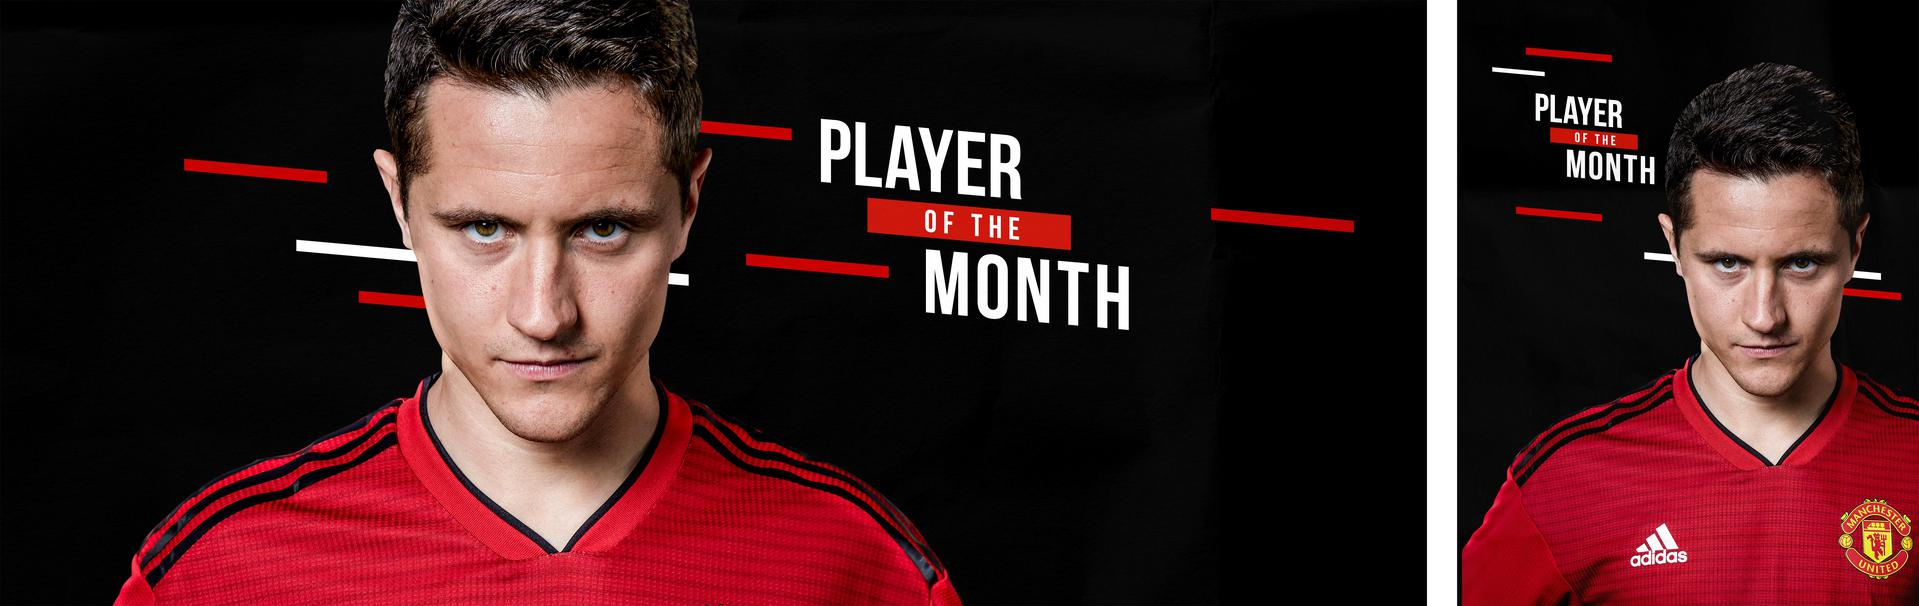 Ander Herrera Player of the Month graphic